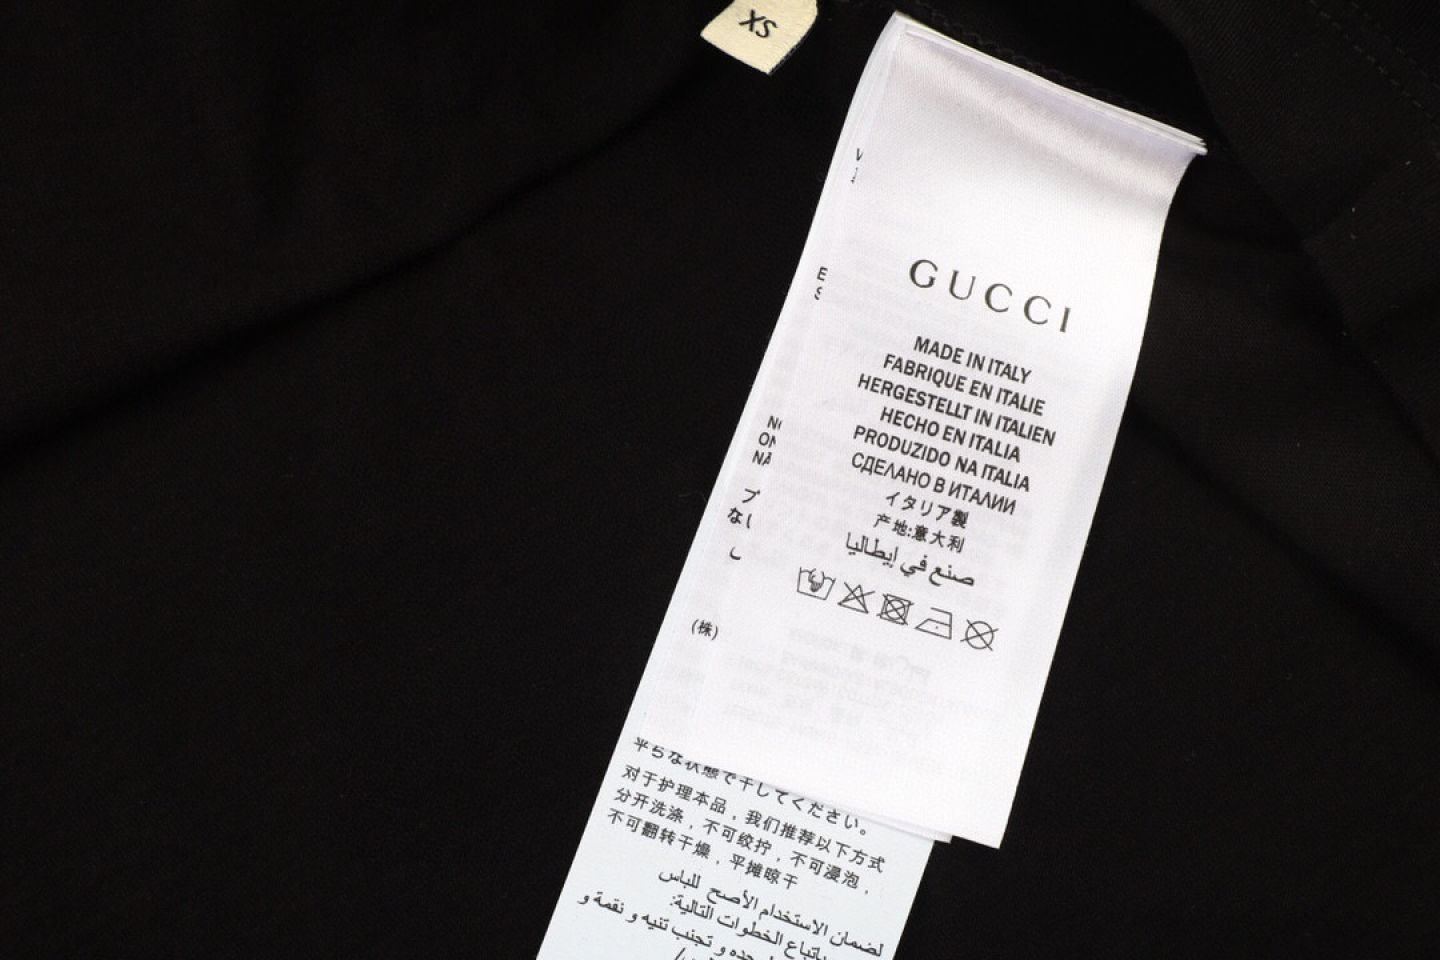 Shirt Gucci 20ss Jerry holding pineapple short-sleeved T-shirt black 3 gucci_20ss_jerry_holding_pineapple_short_sleeved_t_shirt_black__3